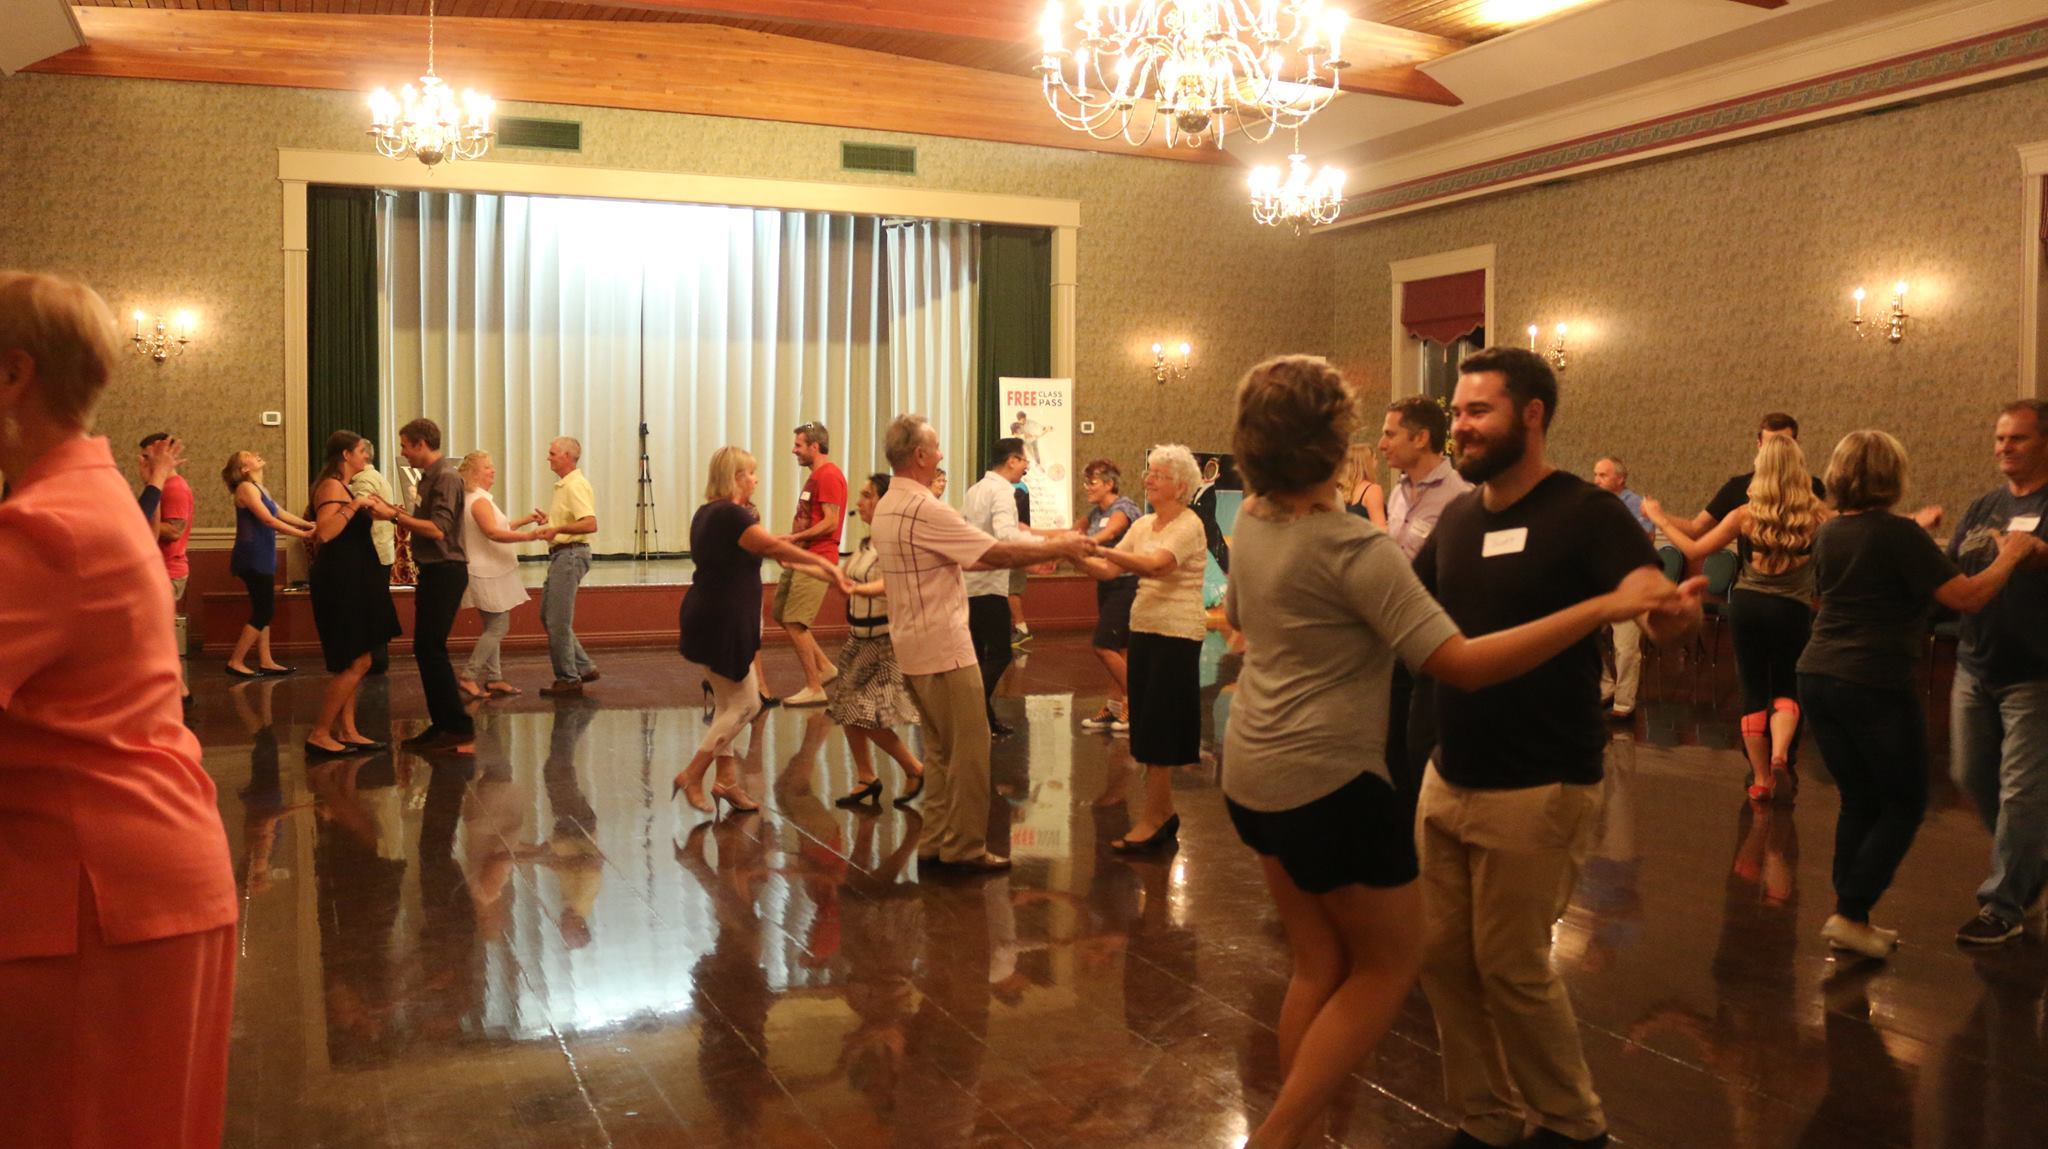 OPEN HOUSE(S) – Join us in downtown Burlington for FREE Ballroom, Salsa, Wedding Dance Lessons!